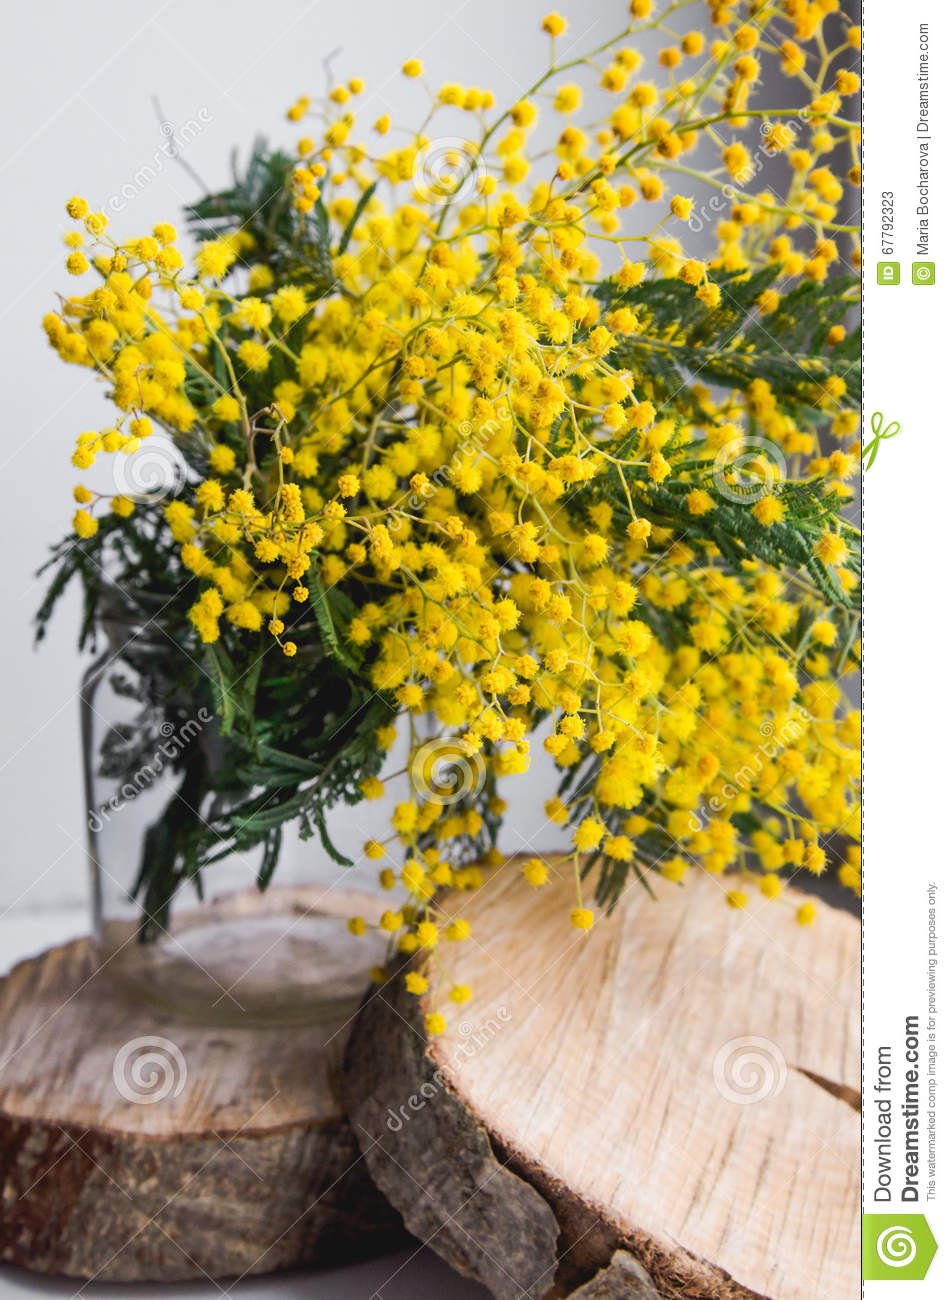 Home Decor, Brunch Of Beautiful Mimosa Yellow Spring Flowers In ...